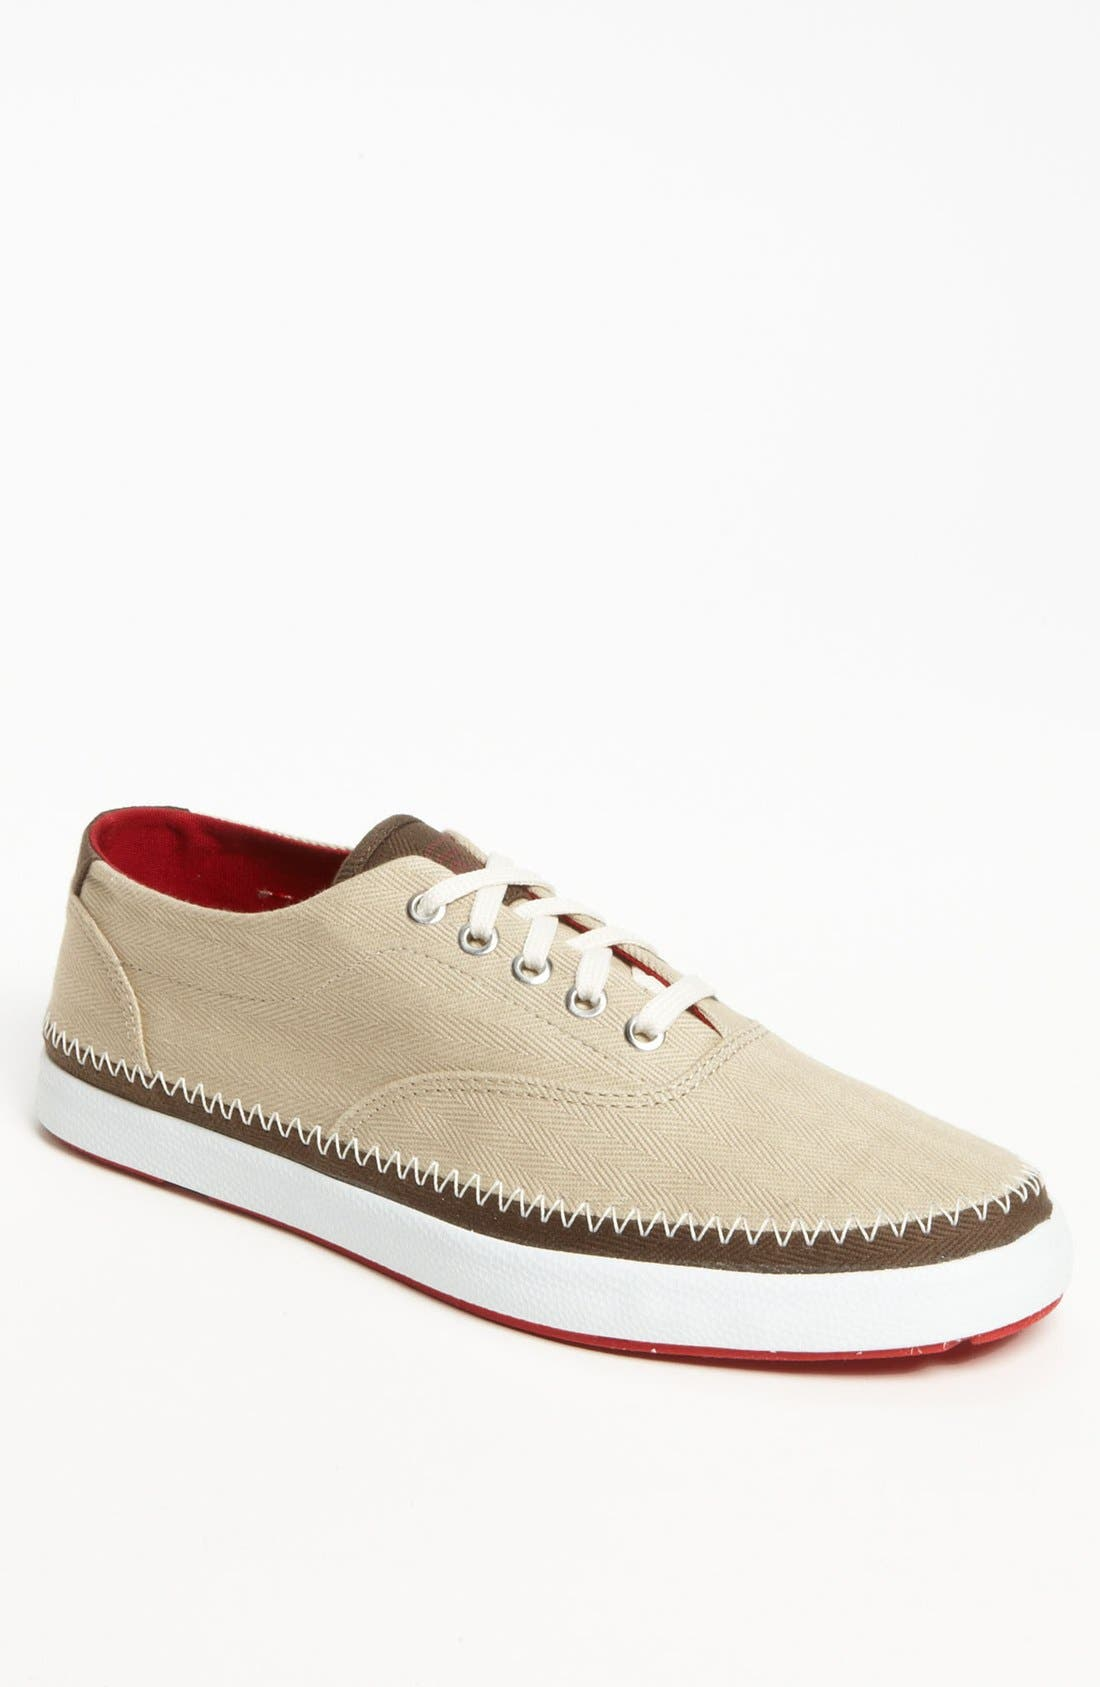 Main Image - Sperry Top-Sider® 'Drifter CVO' Sneaker (Men)